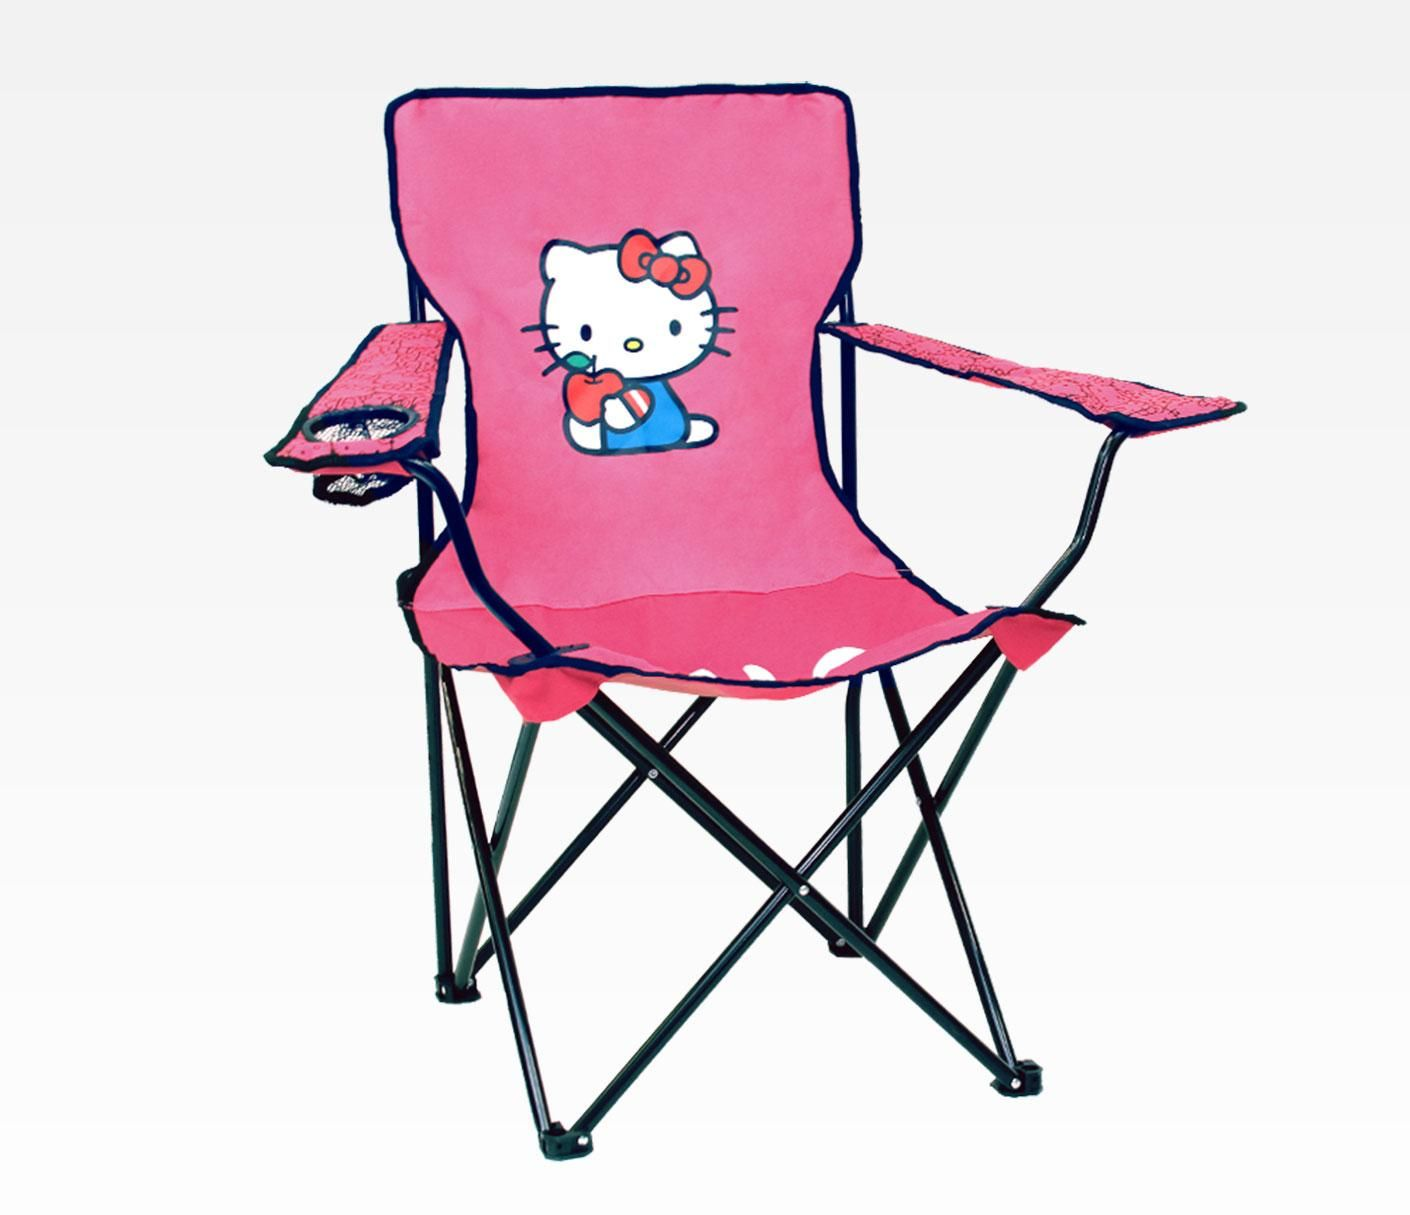 hello kitty chairs used dental chair adult folding camping